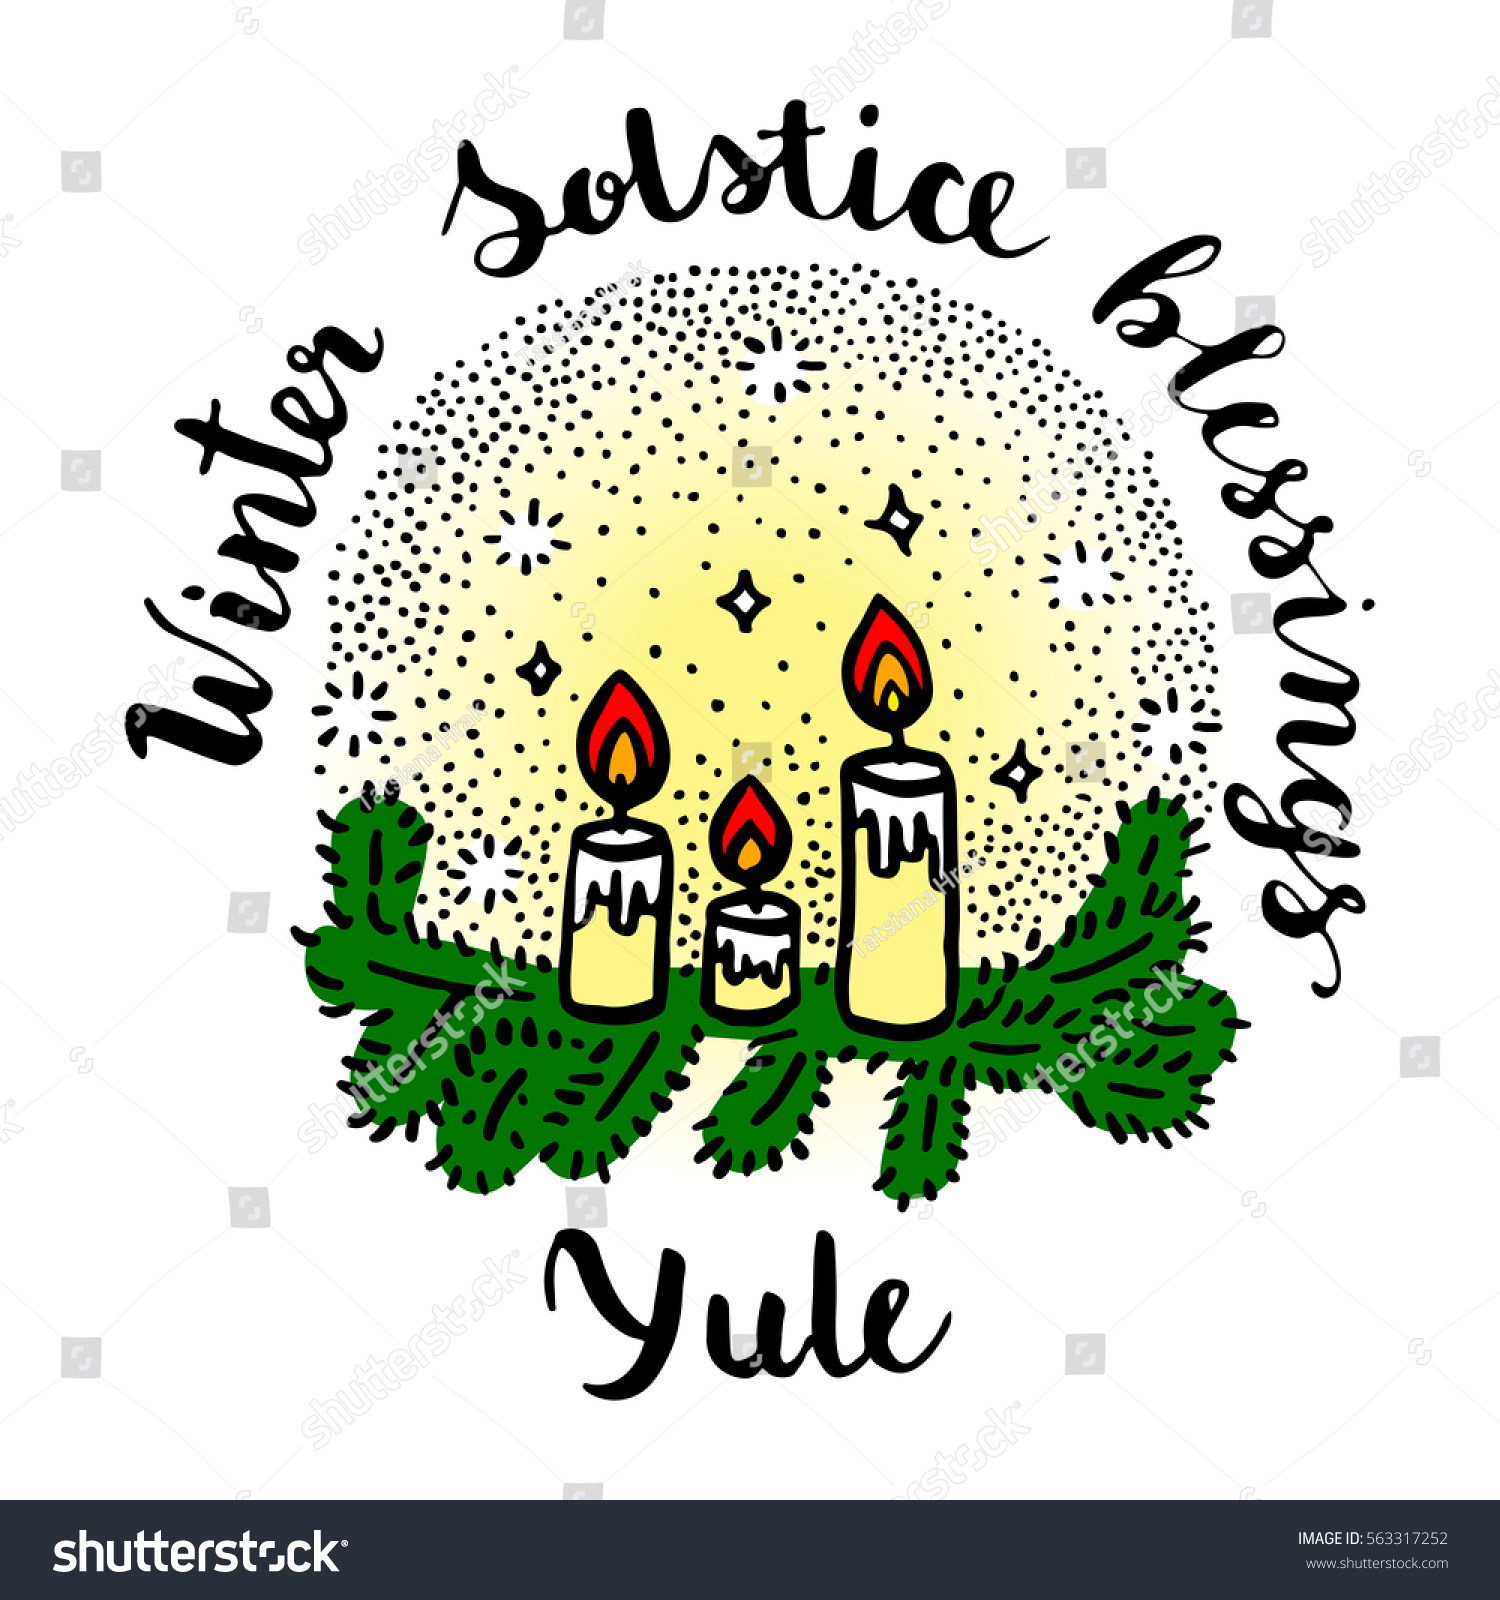 Yule Winter Solstice Day Greeting Card Stock Vector 563317252